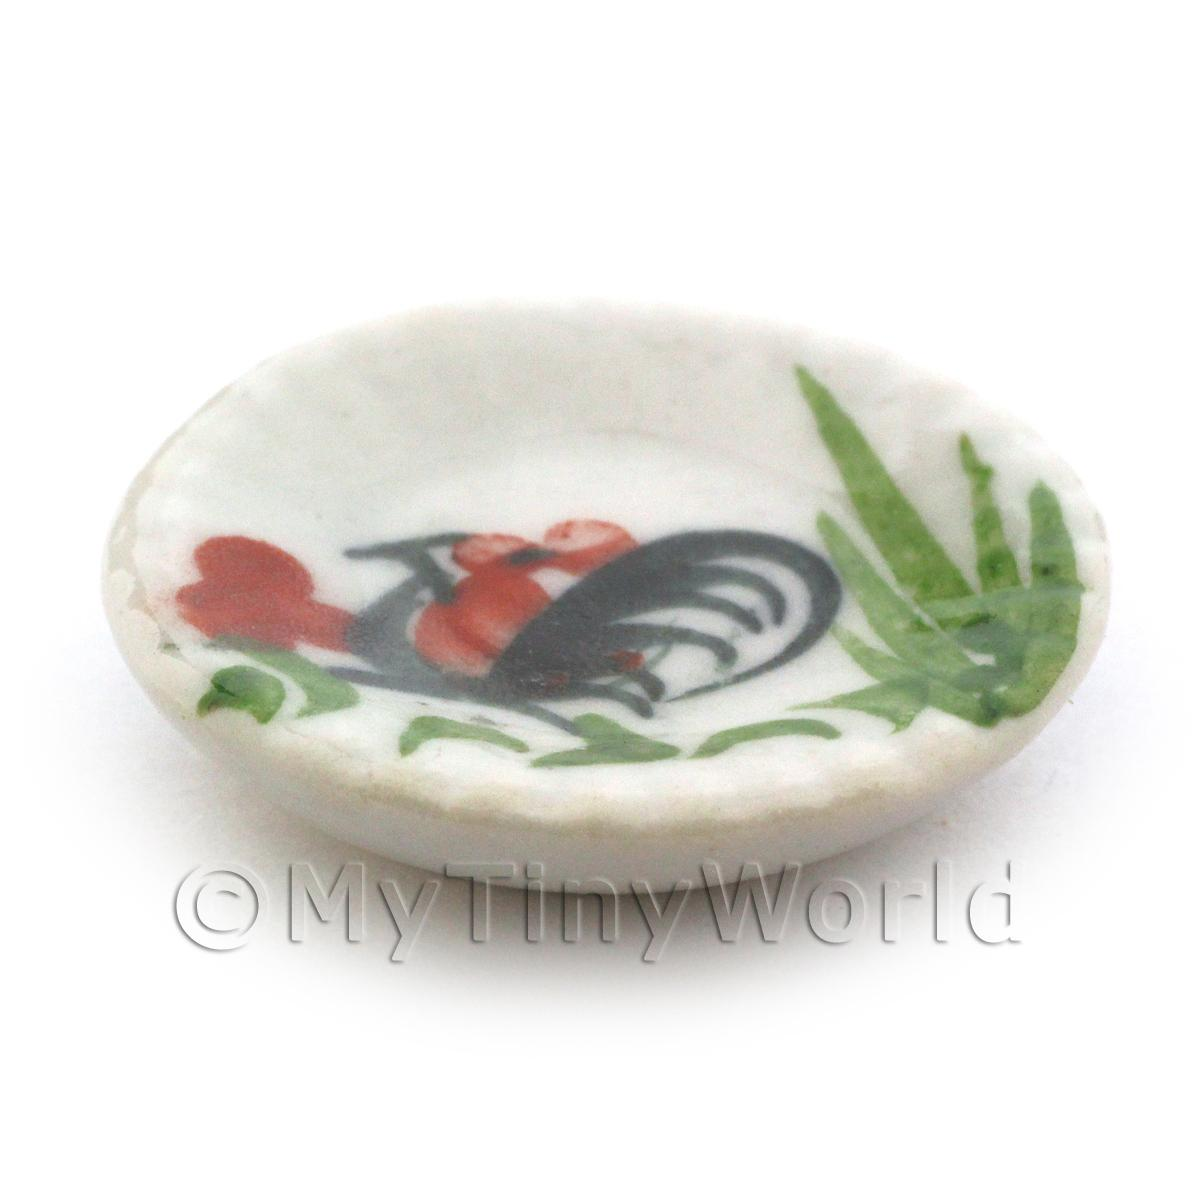 23mm Dolls House Miniature White Ceramic Fluted Edge Cockerel Plate